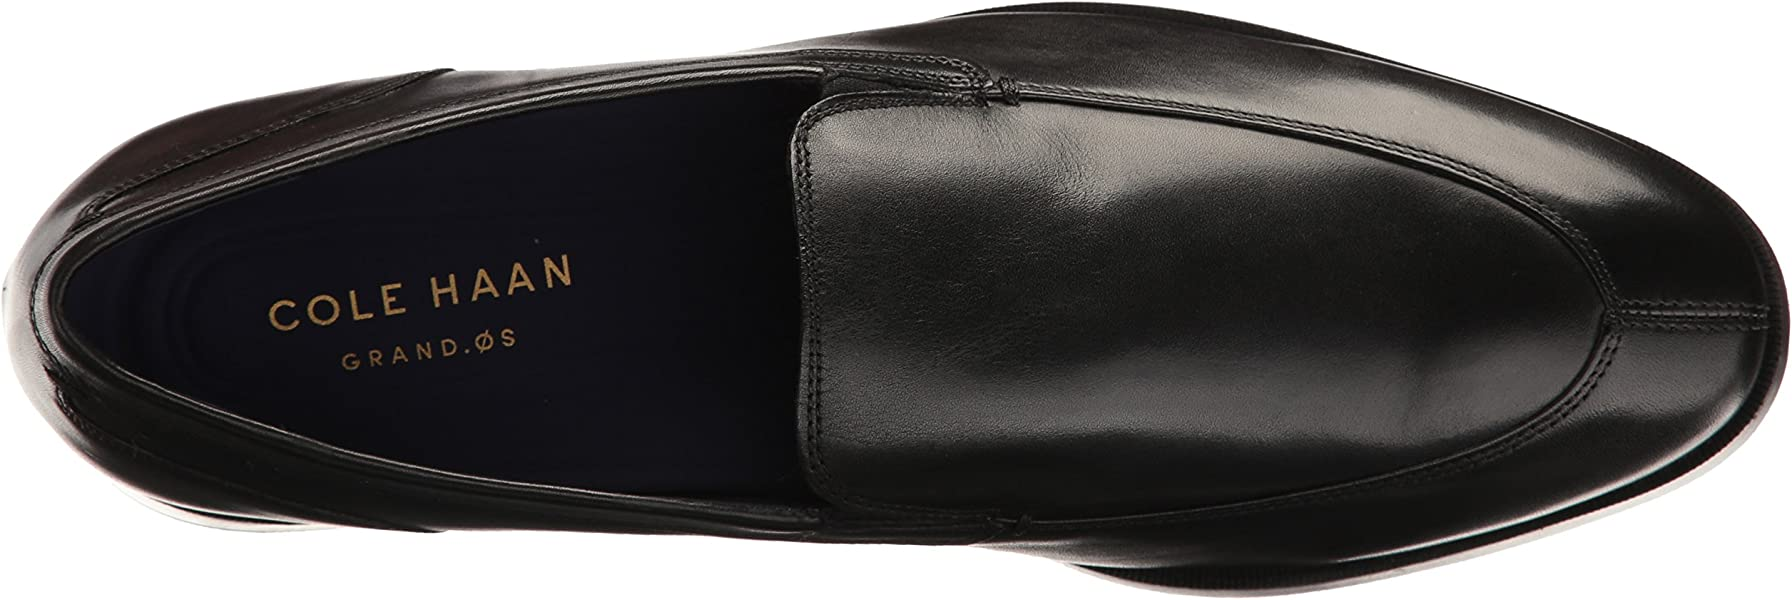 325373c16f9 Cole Haan Men s Jay Grand 2 Gore Slip-On Loafer Black 7 M US. Back.  Double-tap to zoom